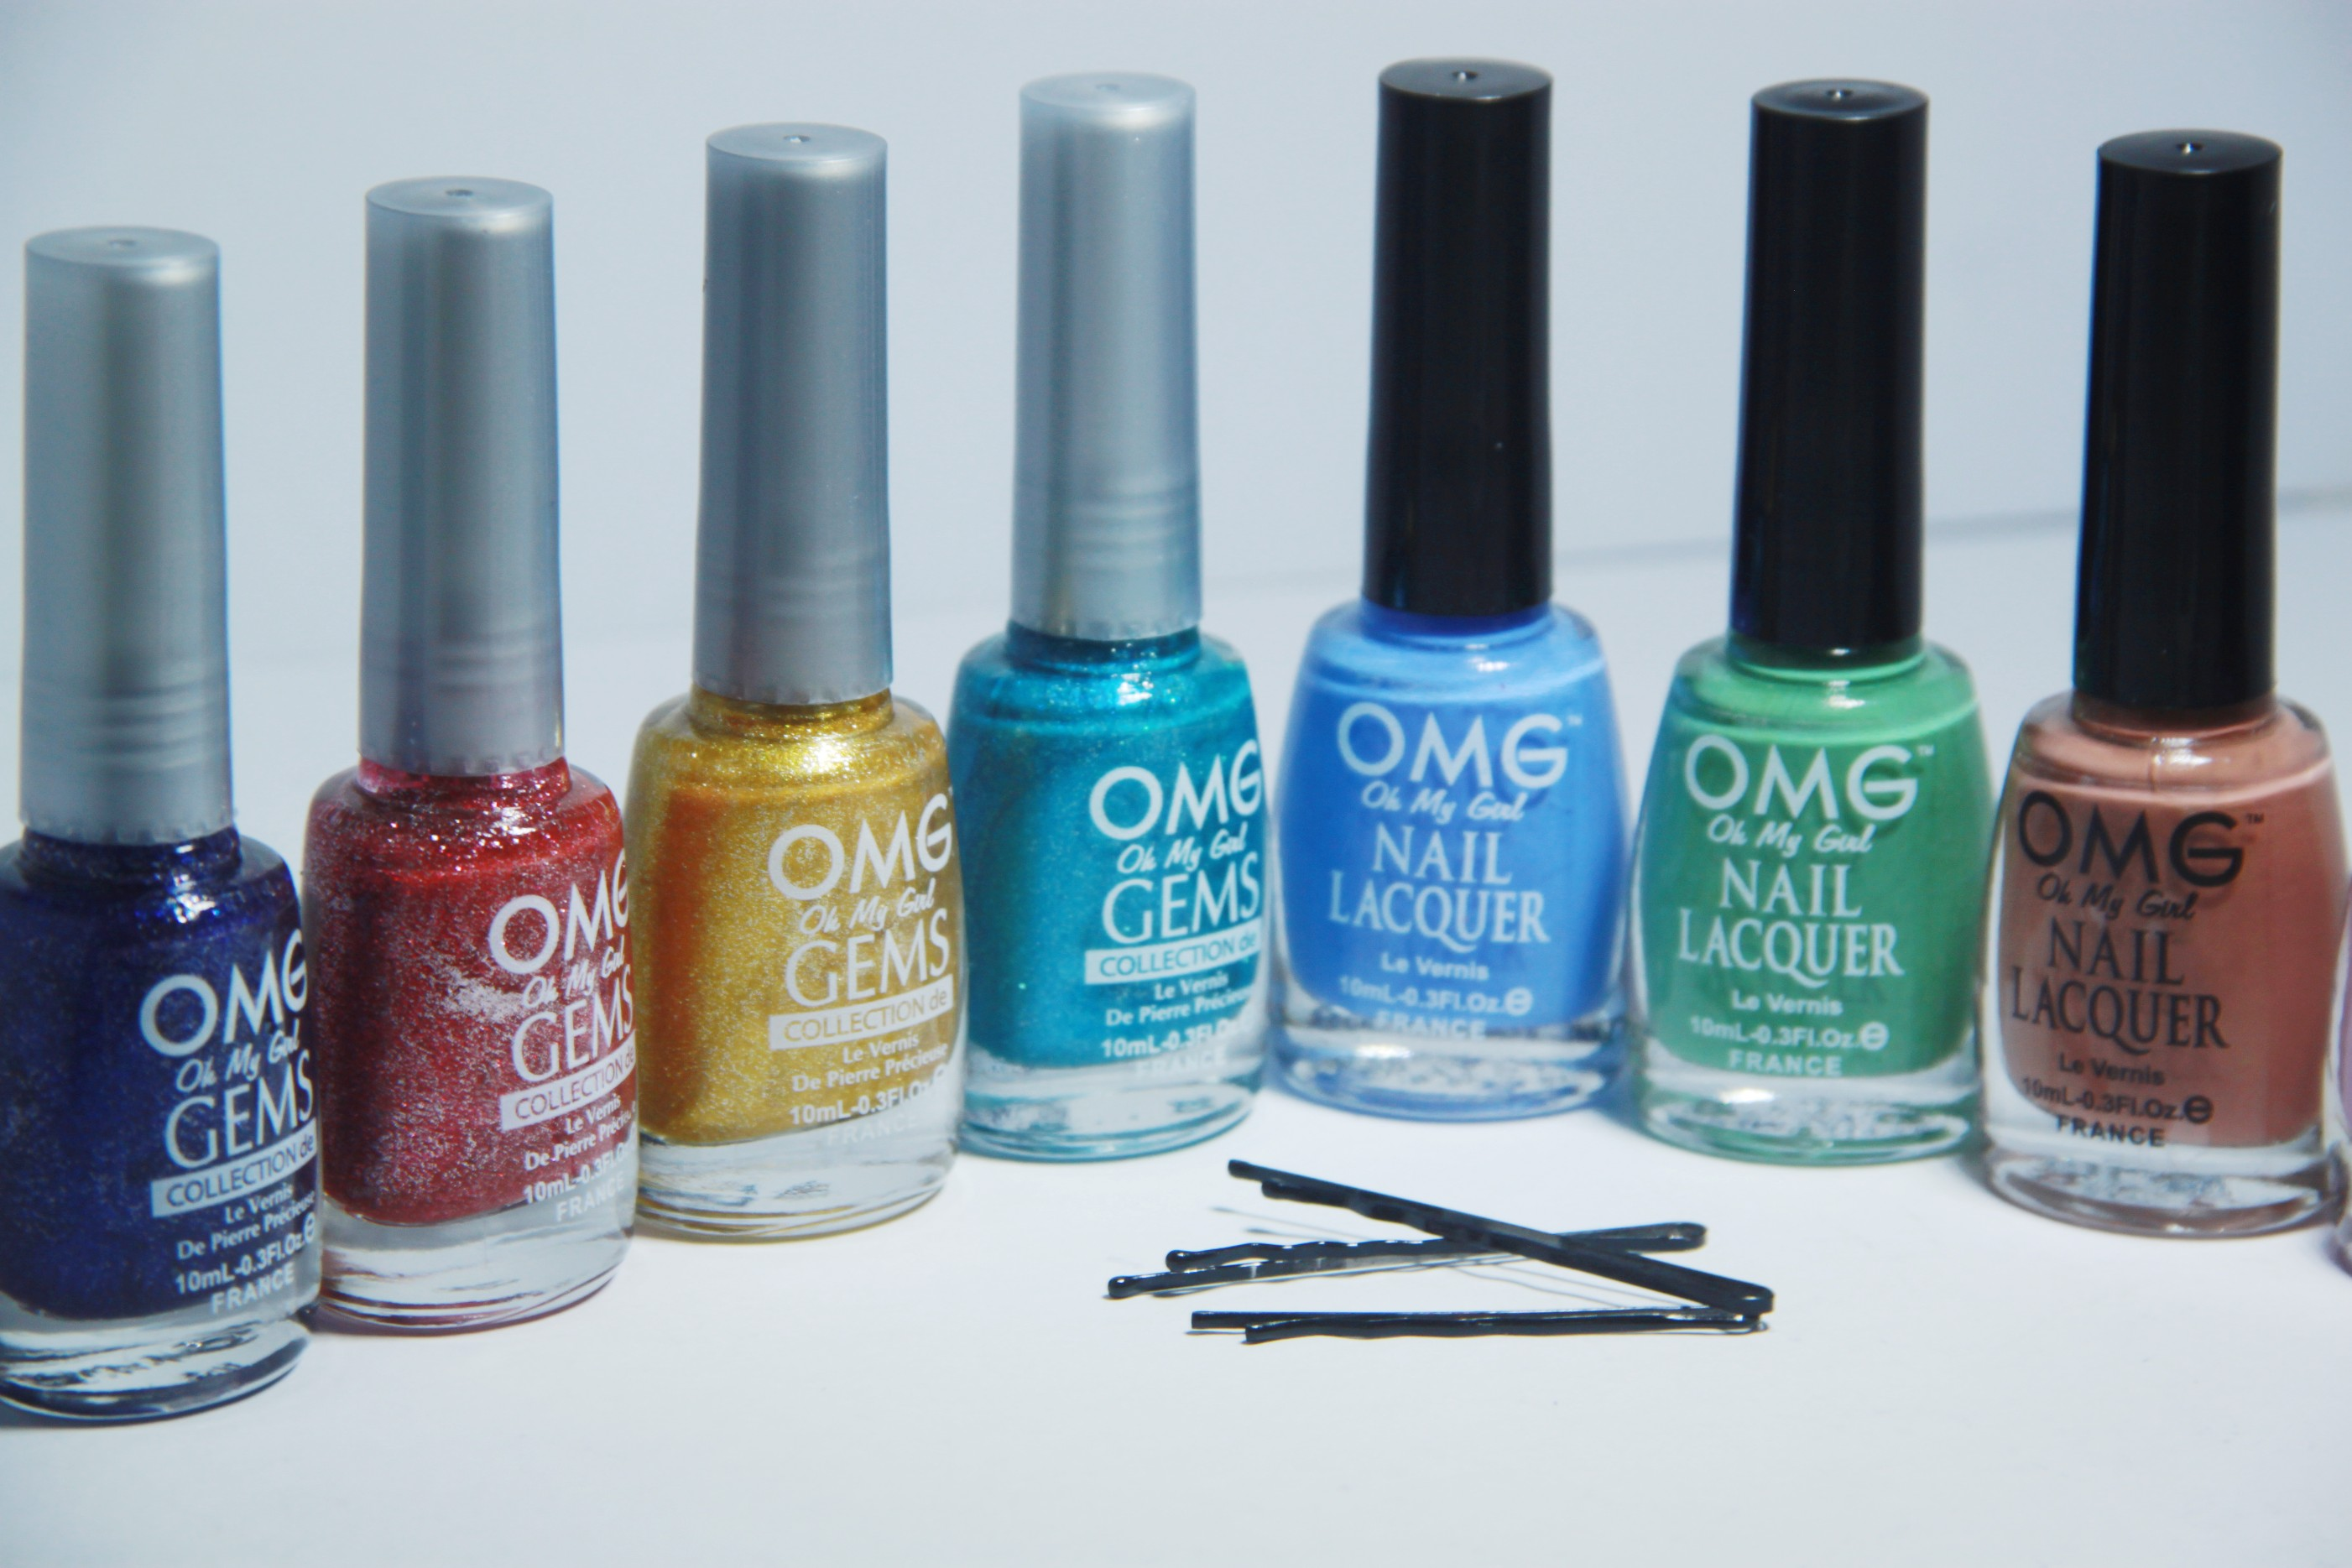 12 Omg Ways Nailpolish Can Be Used Other Than Nails